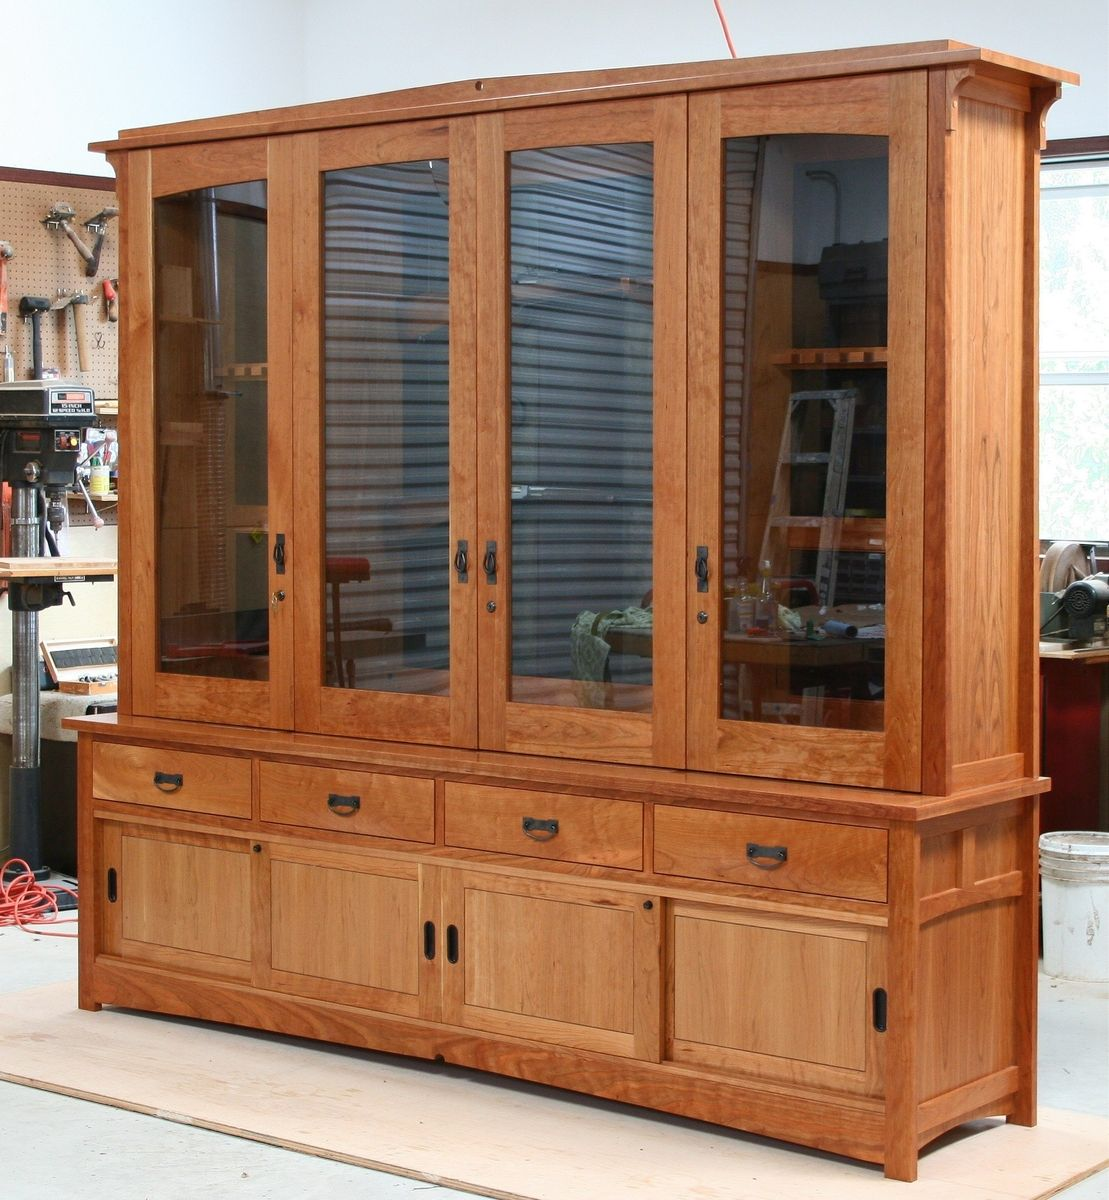 Hand made tally gun cabinet by white wind woodworking for Custom wood cabinets